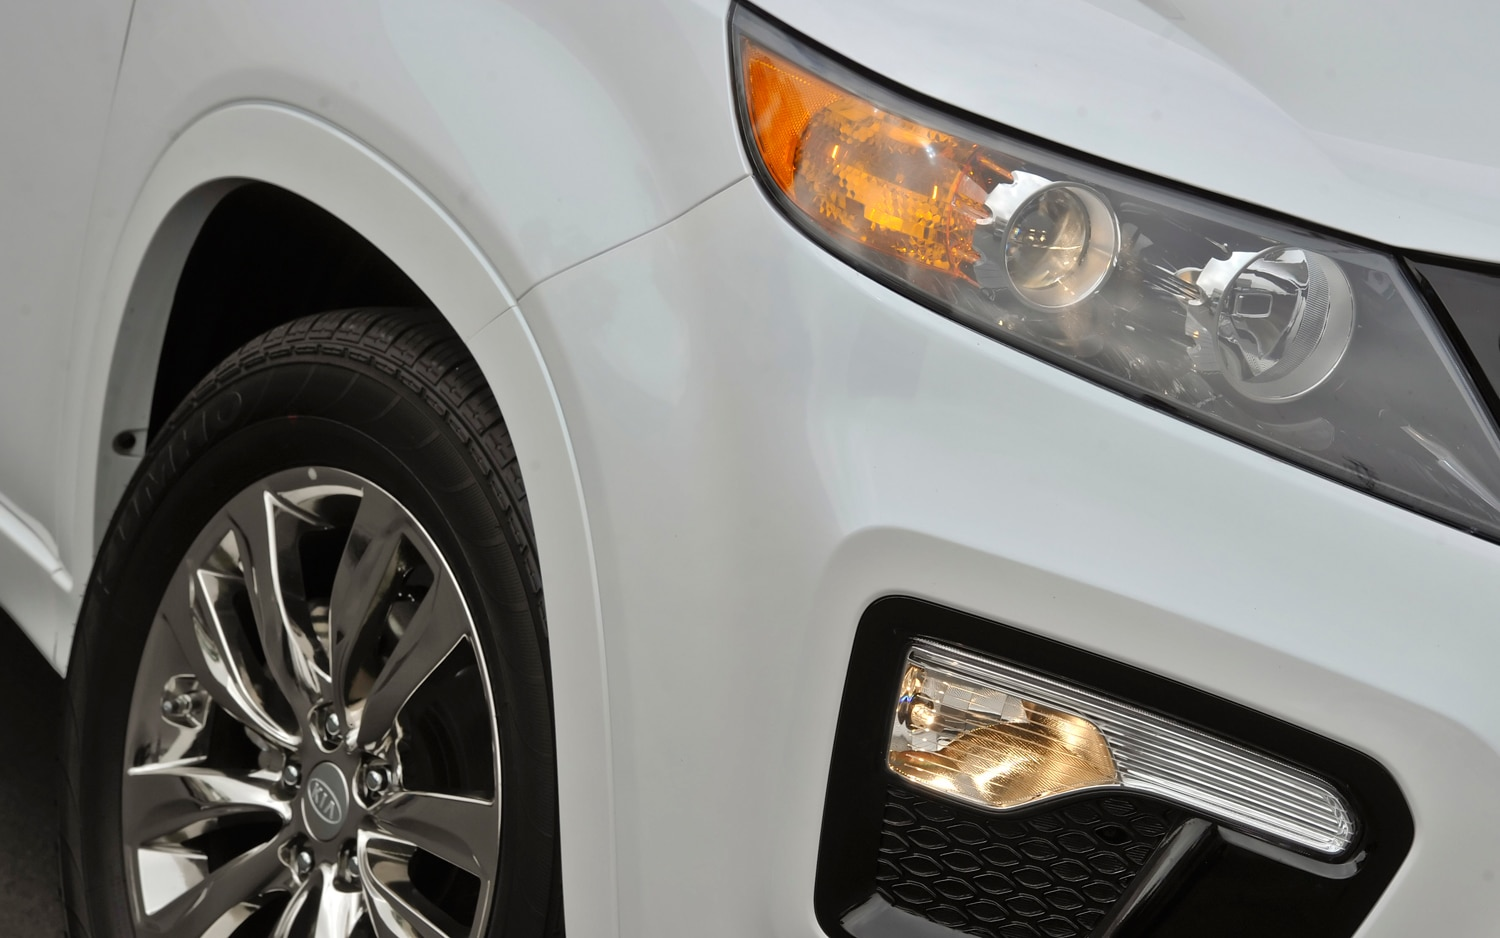 2012 Kia Sorento Headlight